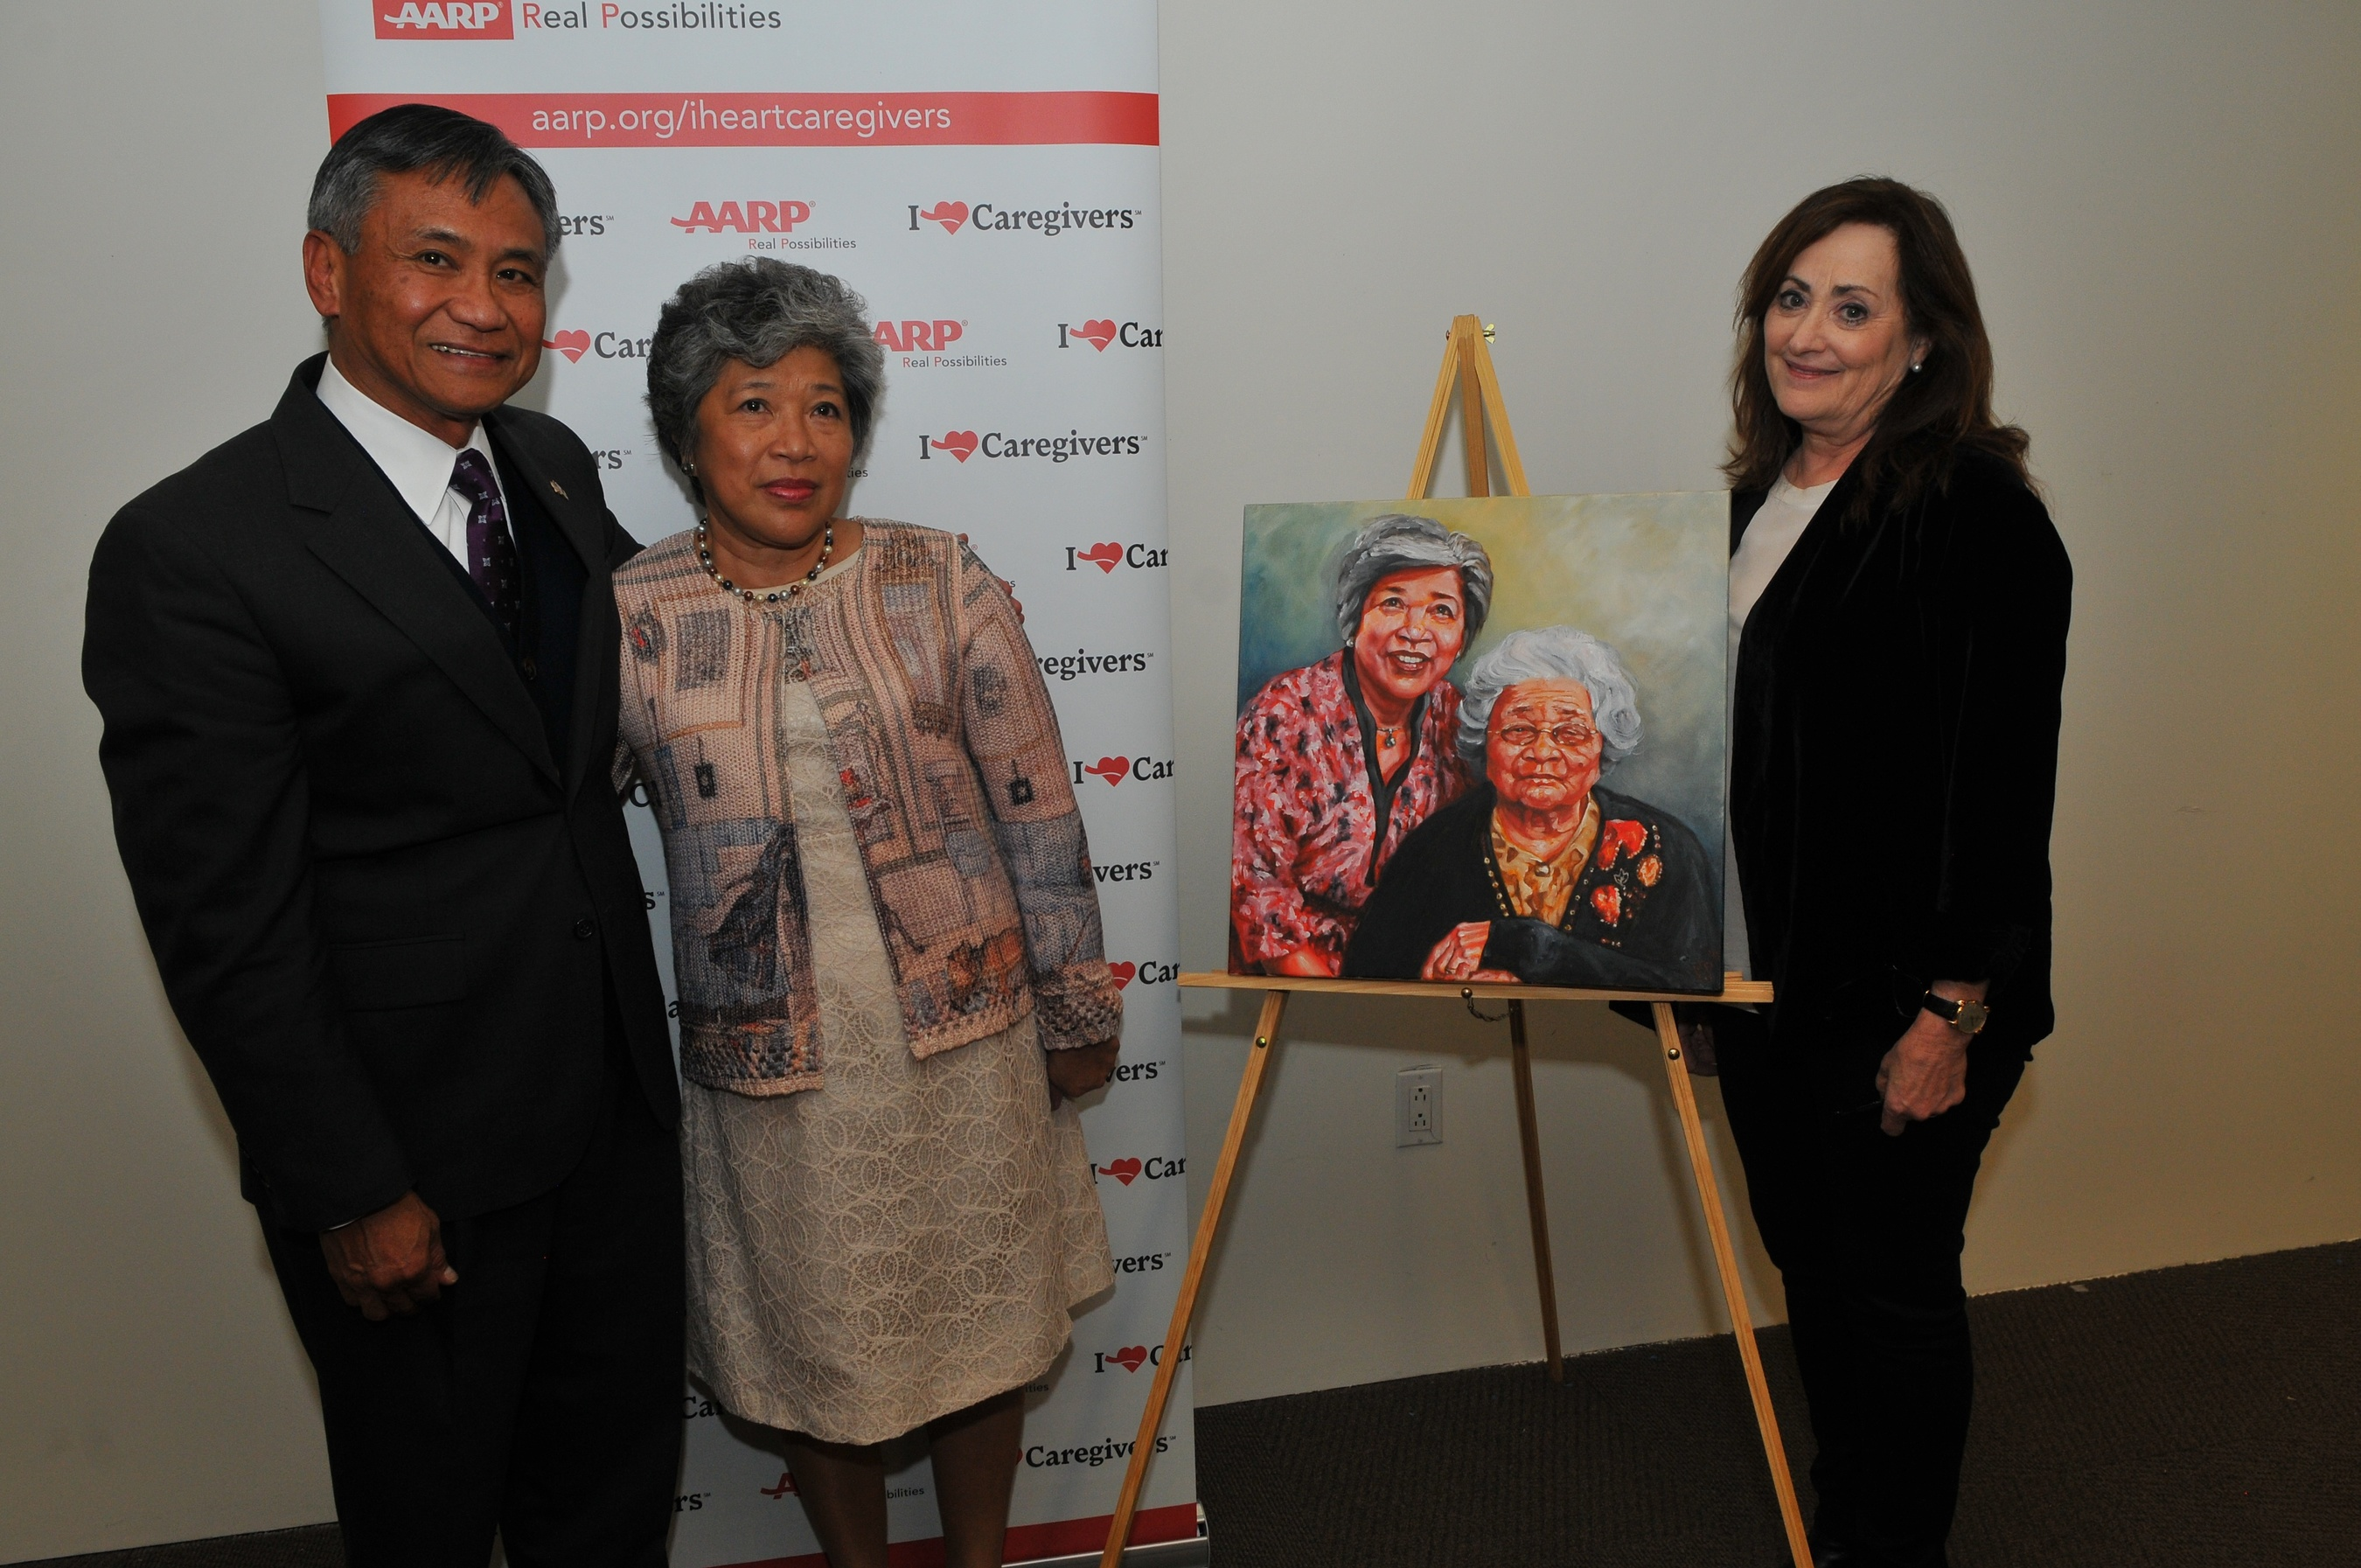 """AARP New York State Director Beth Finkel (R) with """"Portrait of Care"""" she presented to family caregiver Editha Batalla Santiago (L) of Hollis, Queens, standing with AARP Community Ambassador and family caregiver advocate Retired Major Gen. Antonio Taguba."""